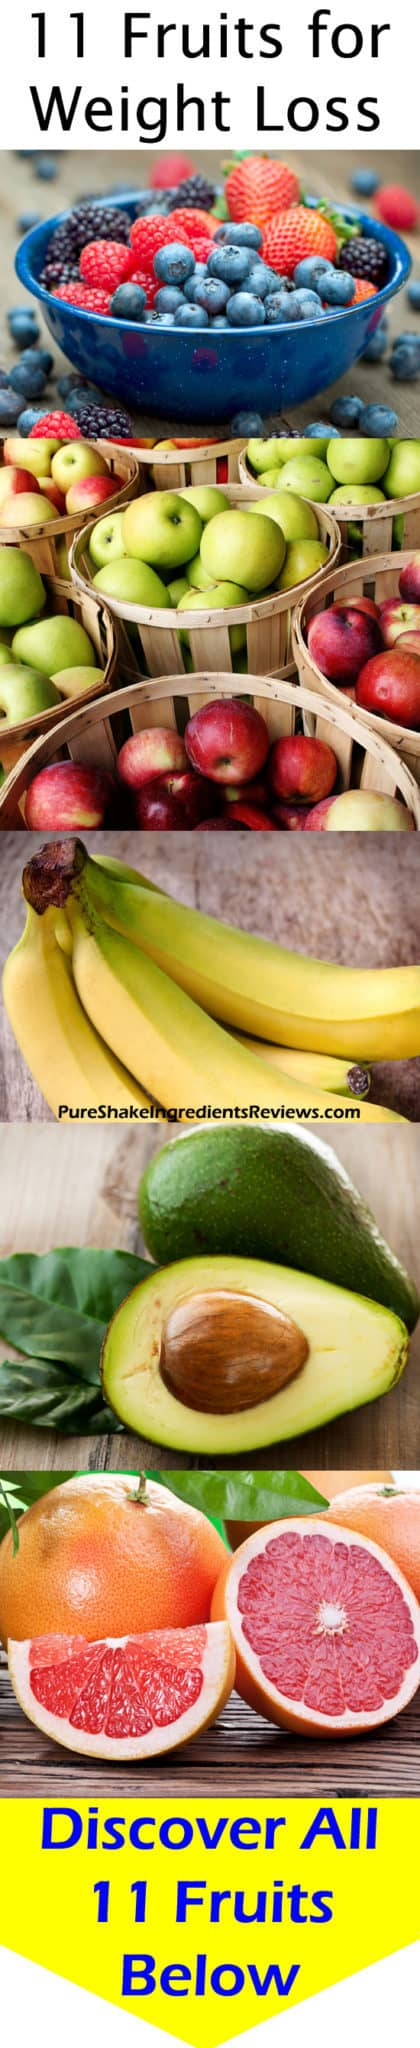 best fruit for weight loss fruits are healthy